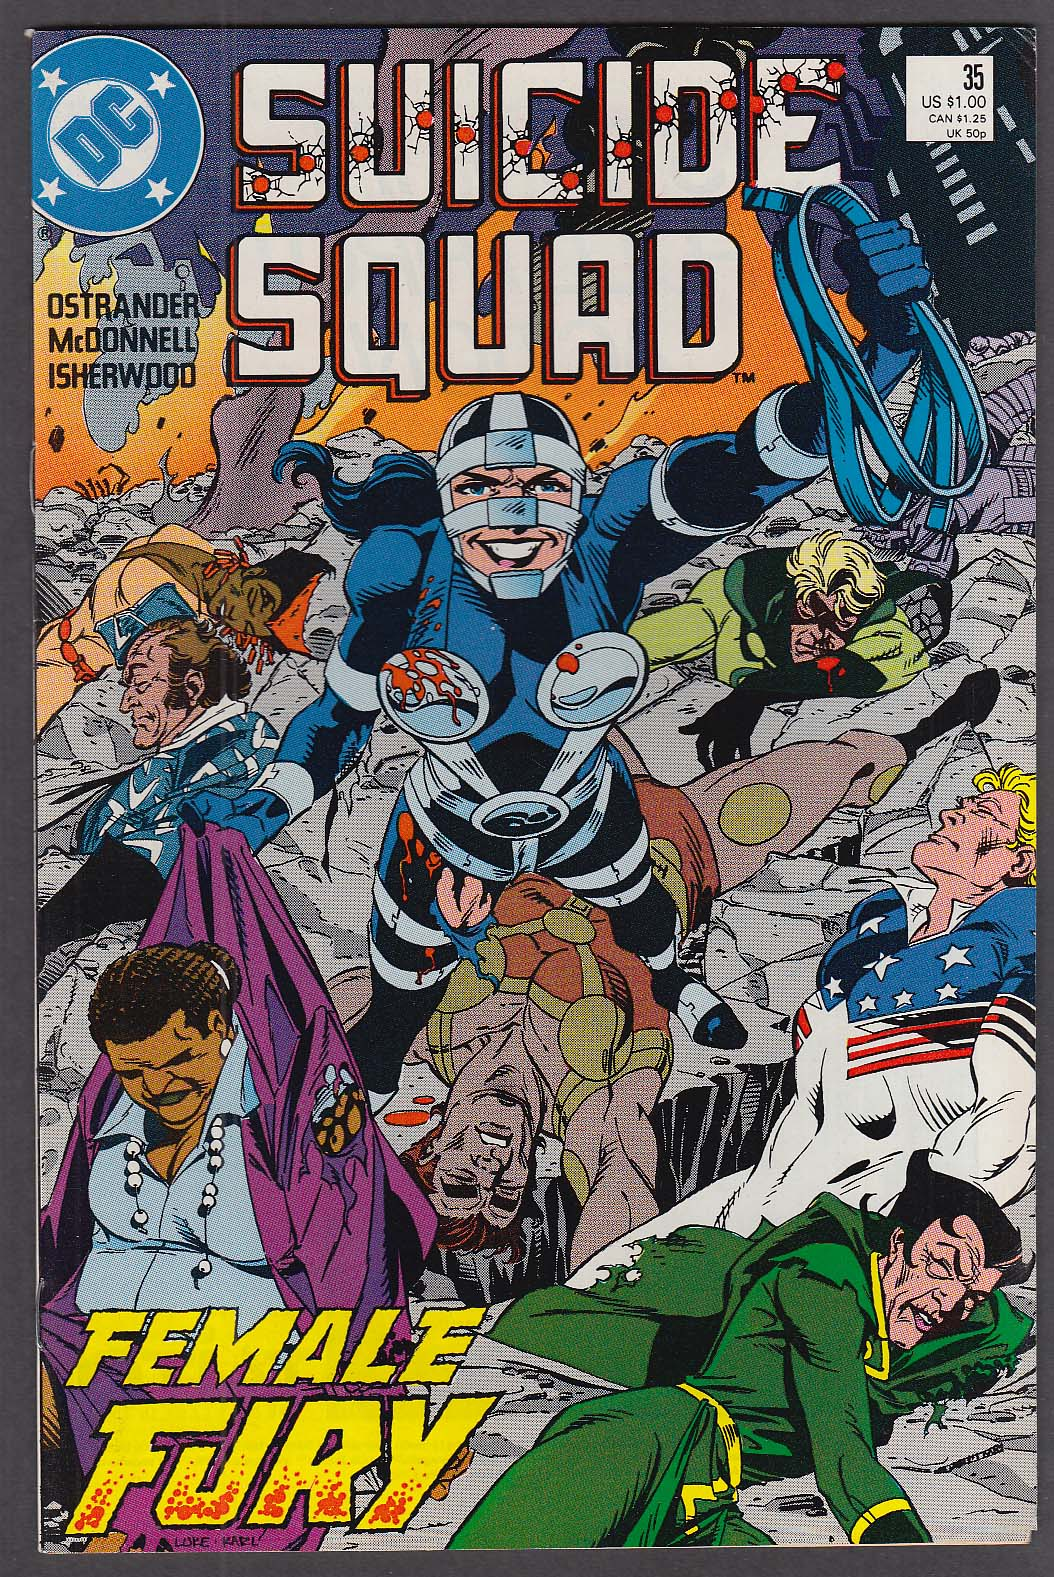 SUICIDE SQUAD #25 DC comic book 1989 Female Fury